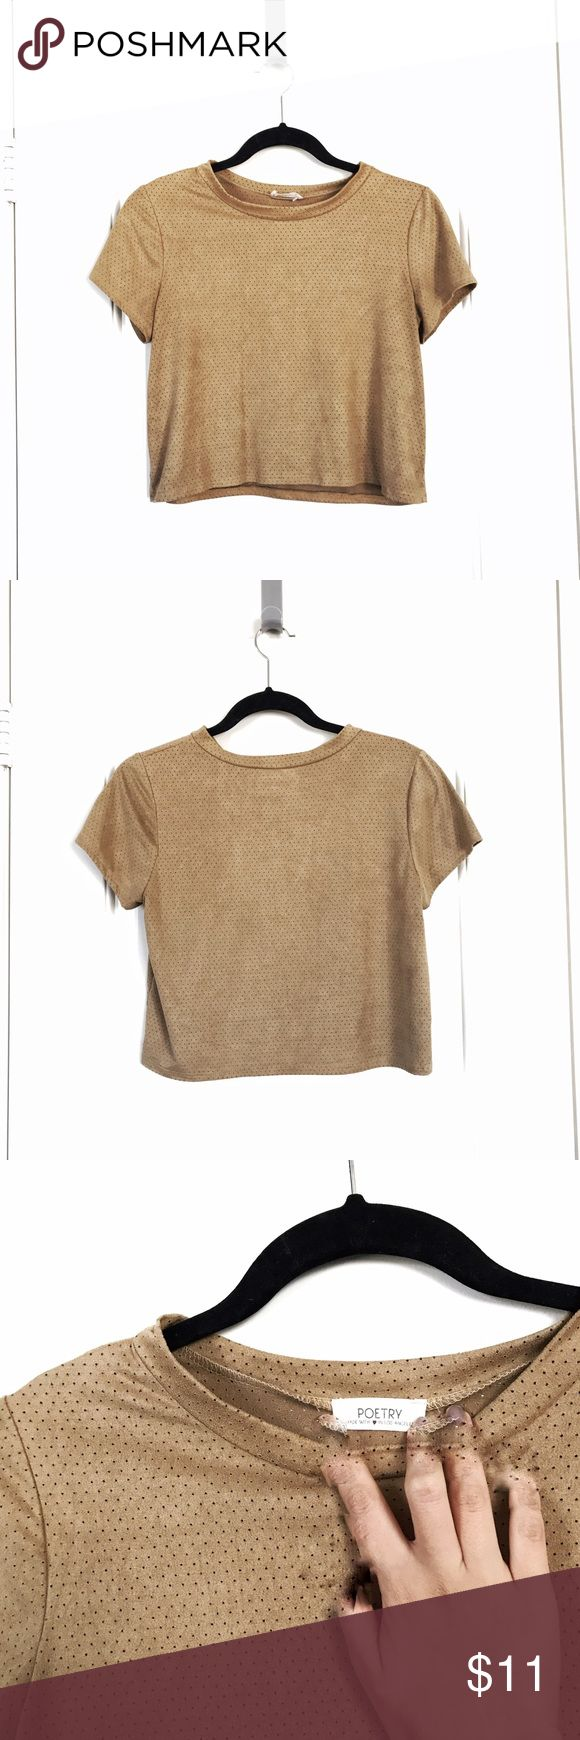 Camel crop top * suede-like material * in gently worn condition * size L but fits more like a S/M (which is why this is listed as M) * not listed brand; tagged for exposure * bundle up for discounts   Special Offer: purchase $10+ from my closet and get another item listed $10 or less for free 💫 if interested, just let me know which one you want and I'll be happy to gift it for you Urban Outfitters Tops Crop Tops